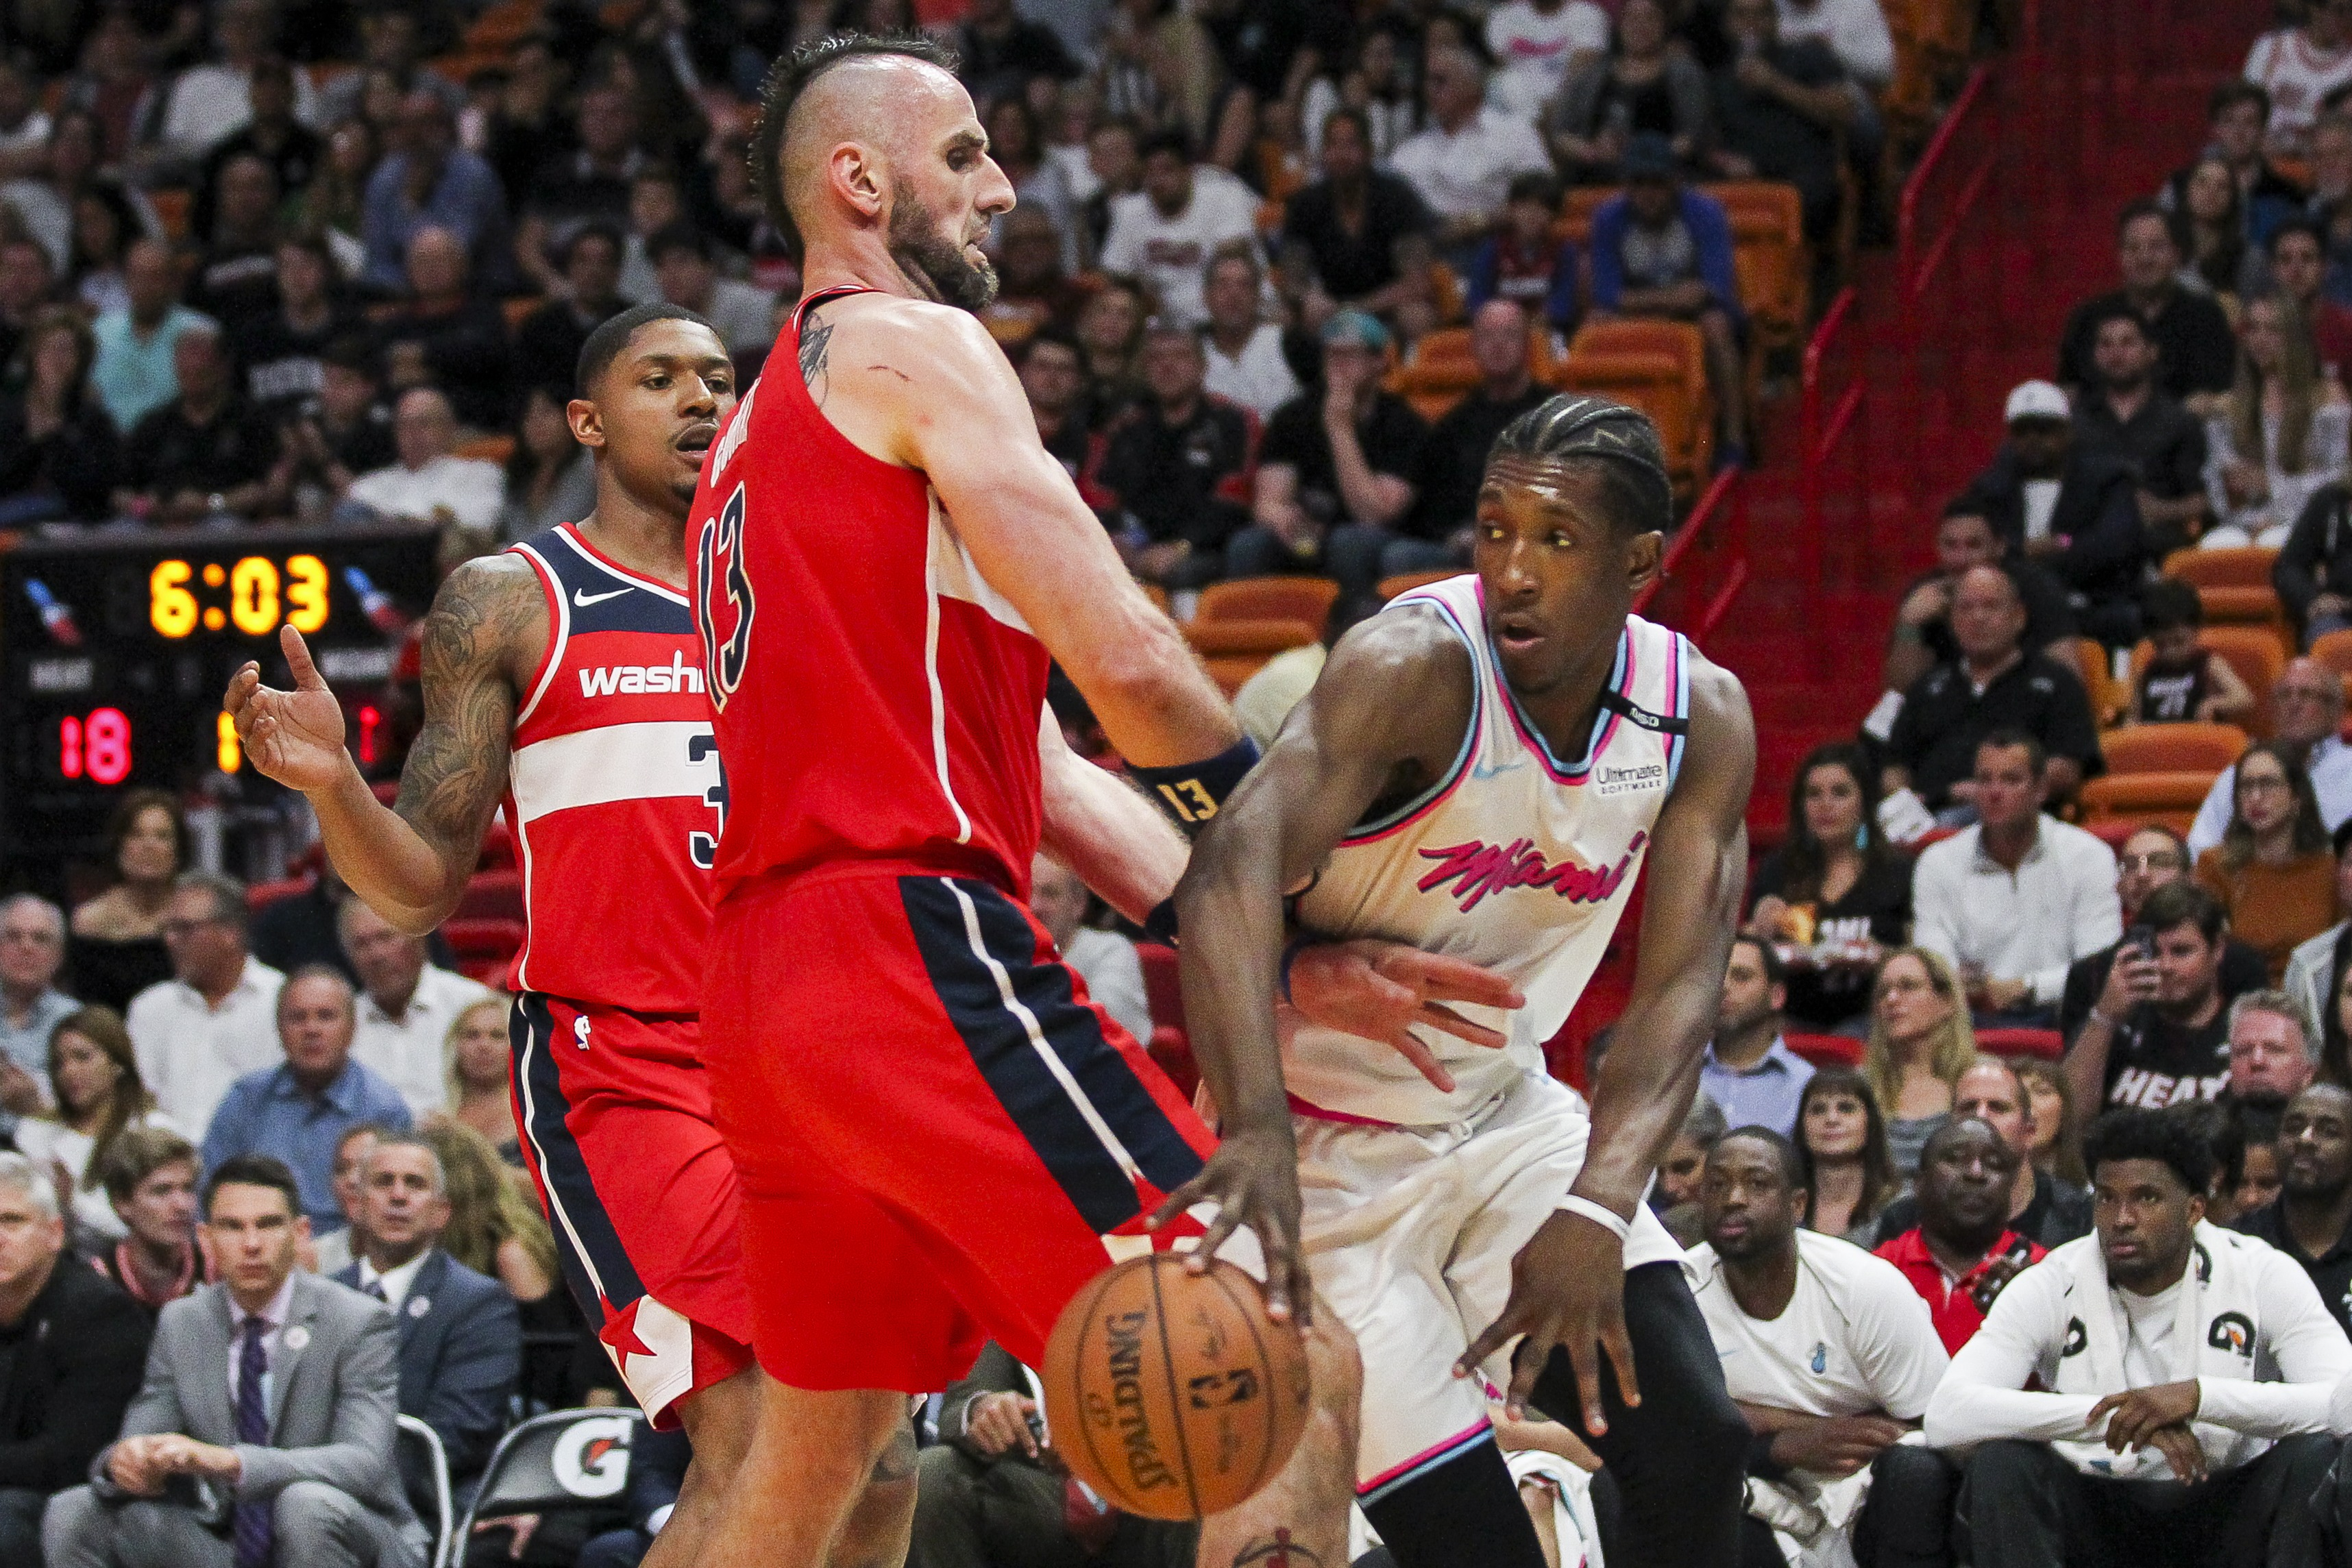 Heat red-hot in National Basketball Association against Wizards